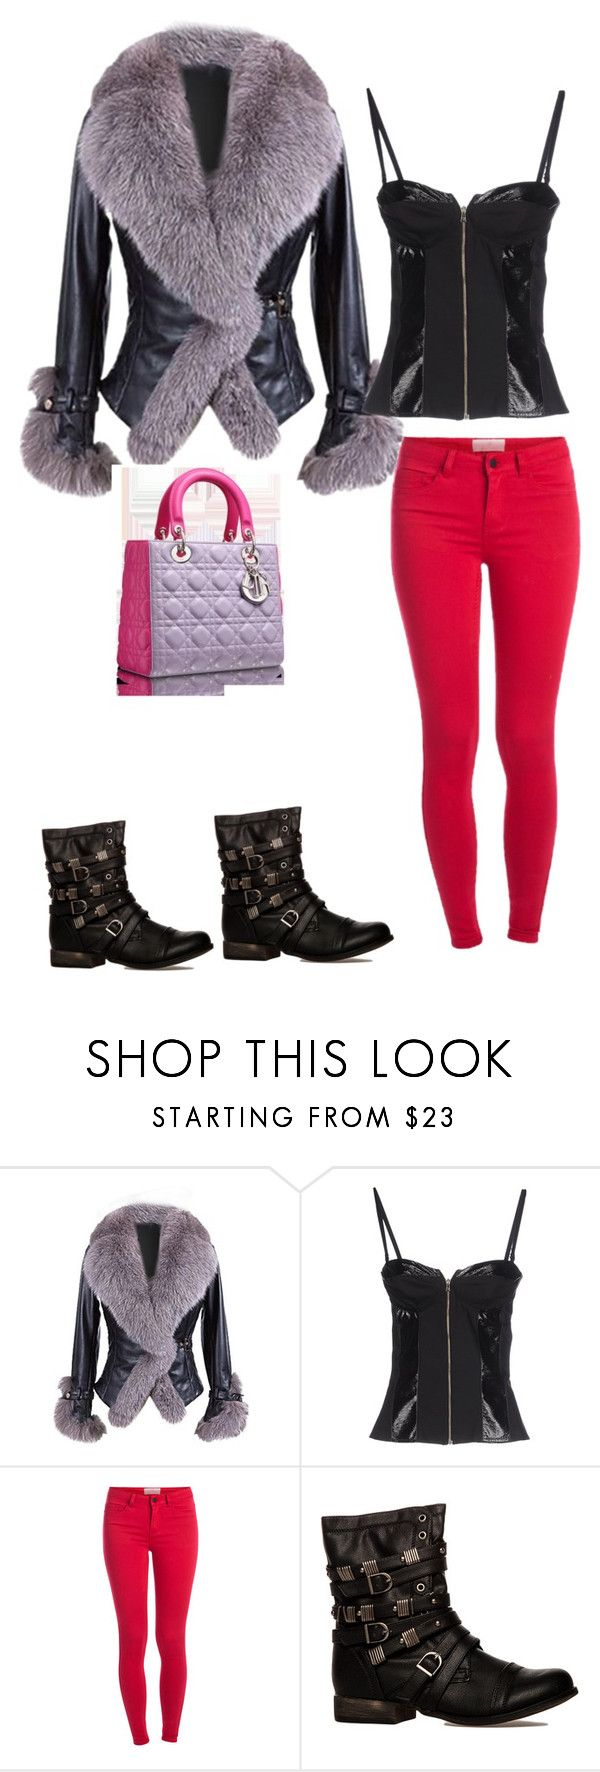 """Без названия #1539"" by katya-ukraine on Polyvore featuring мода, GUESS by Marciano и Pieces"